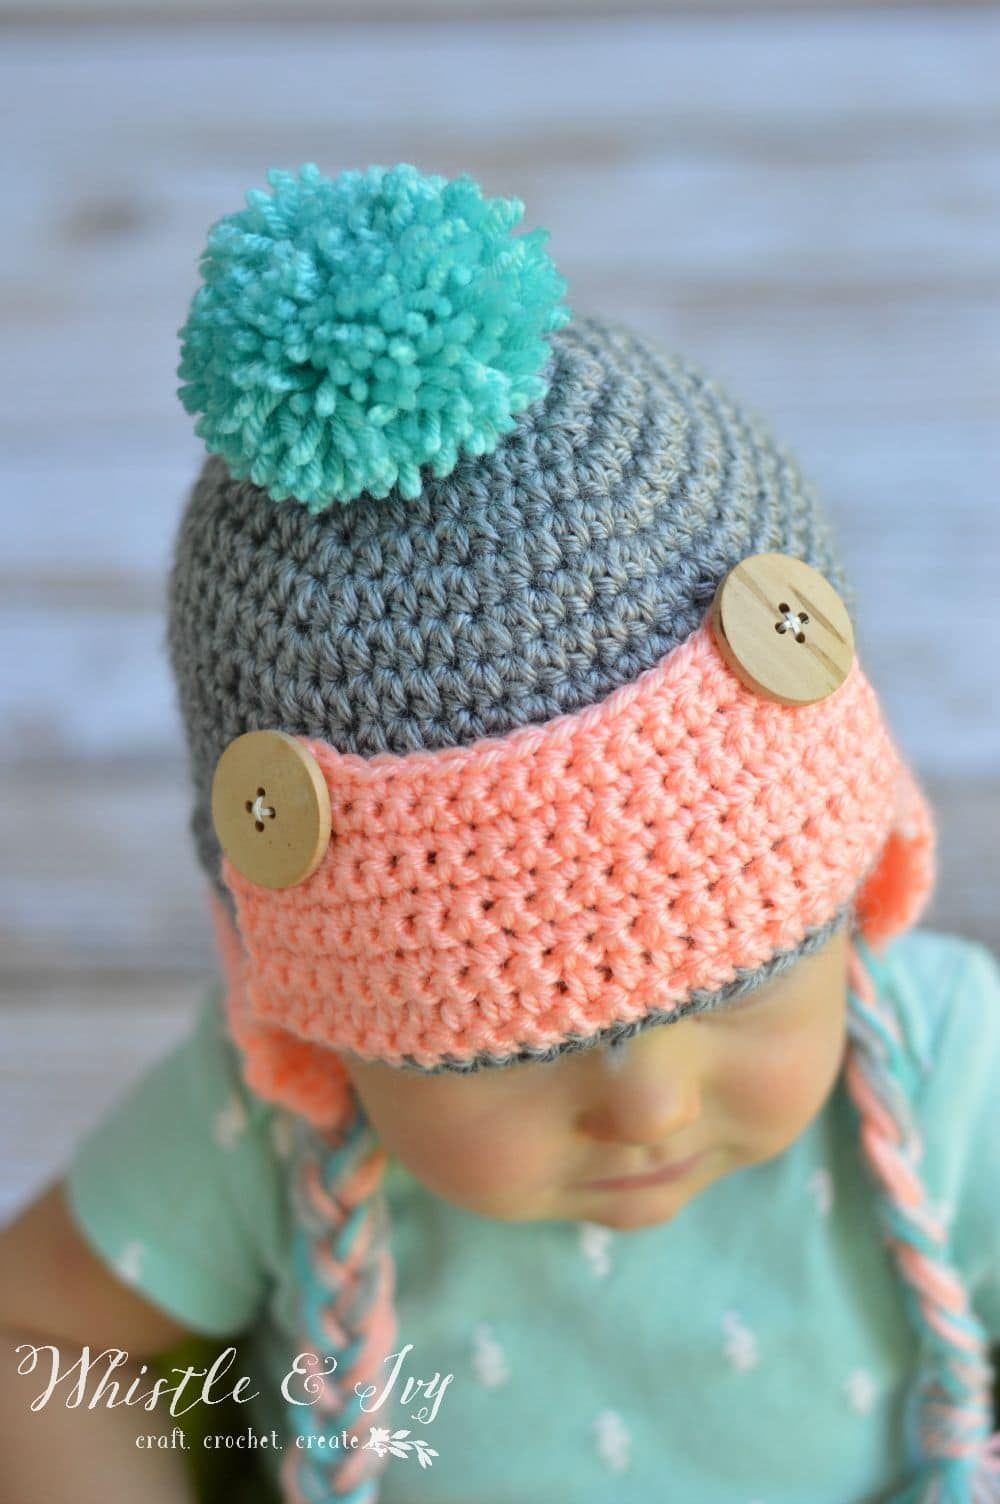 a7309bb3cfd Baby Button Trapper Hat - This cozy hat is a cute and fun baby accessory  for winter!  Free pattern by Whistle and Ivy